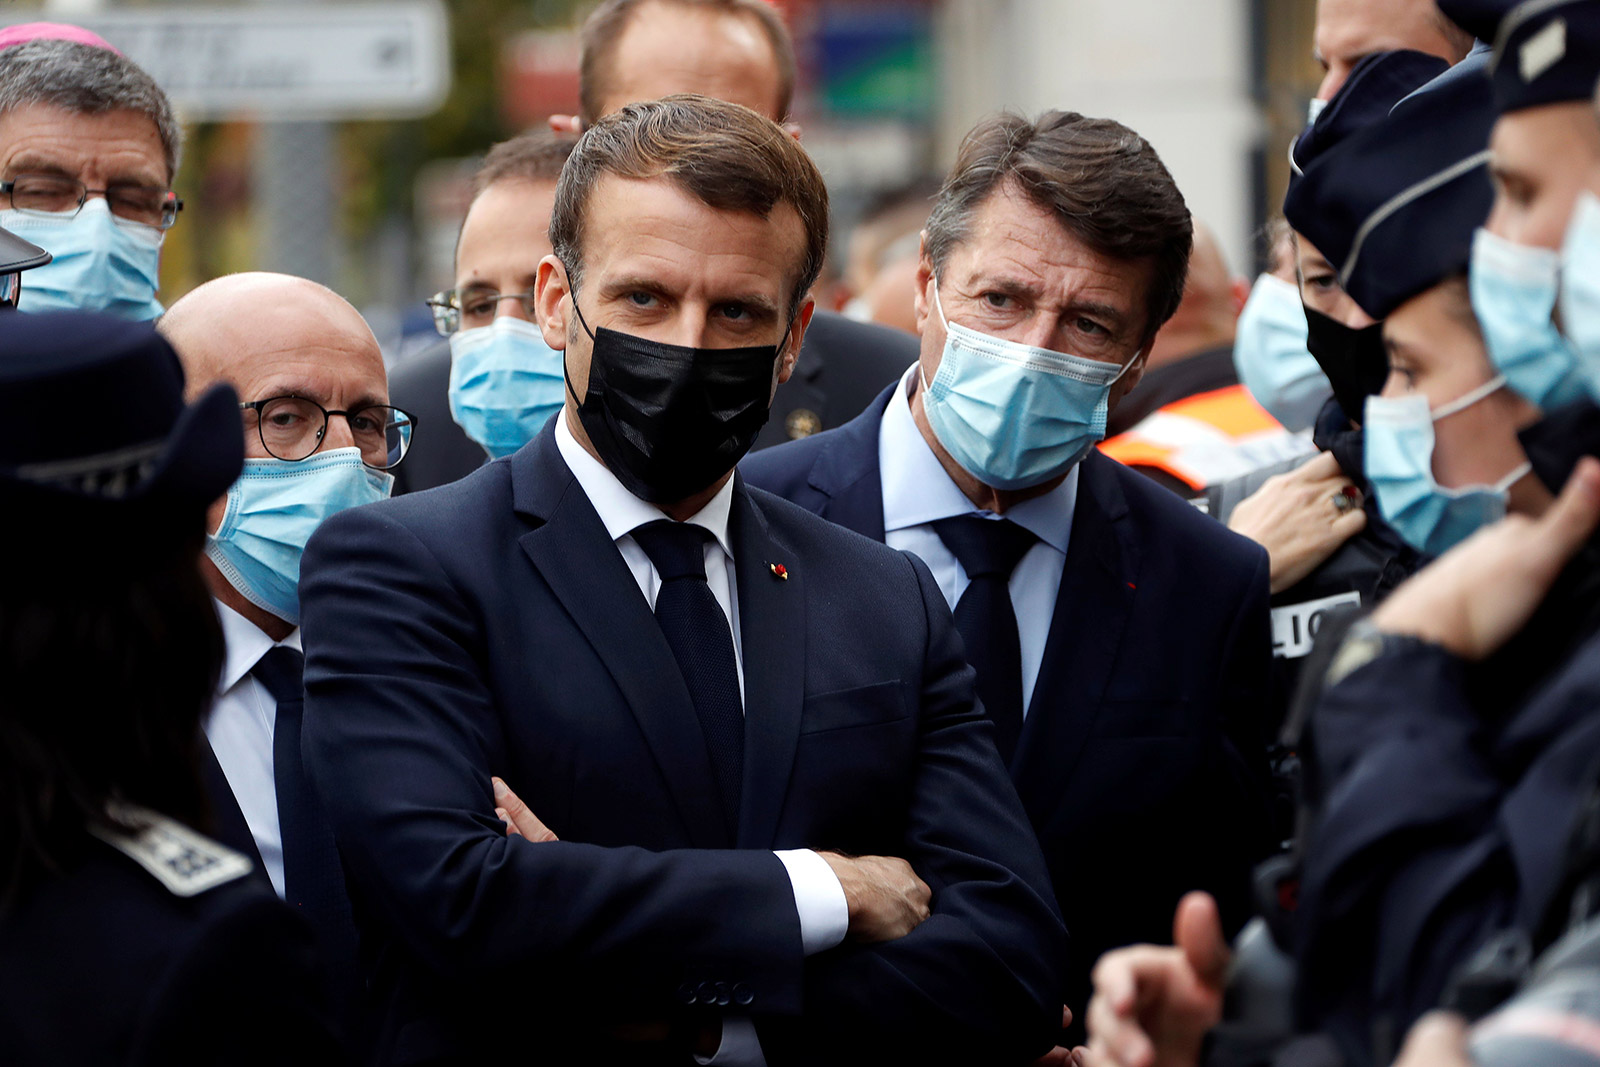 French President Emmanuel Macron visits the scene of the knife attack in Nice.